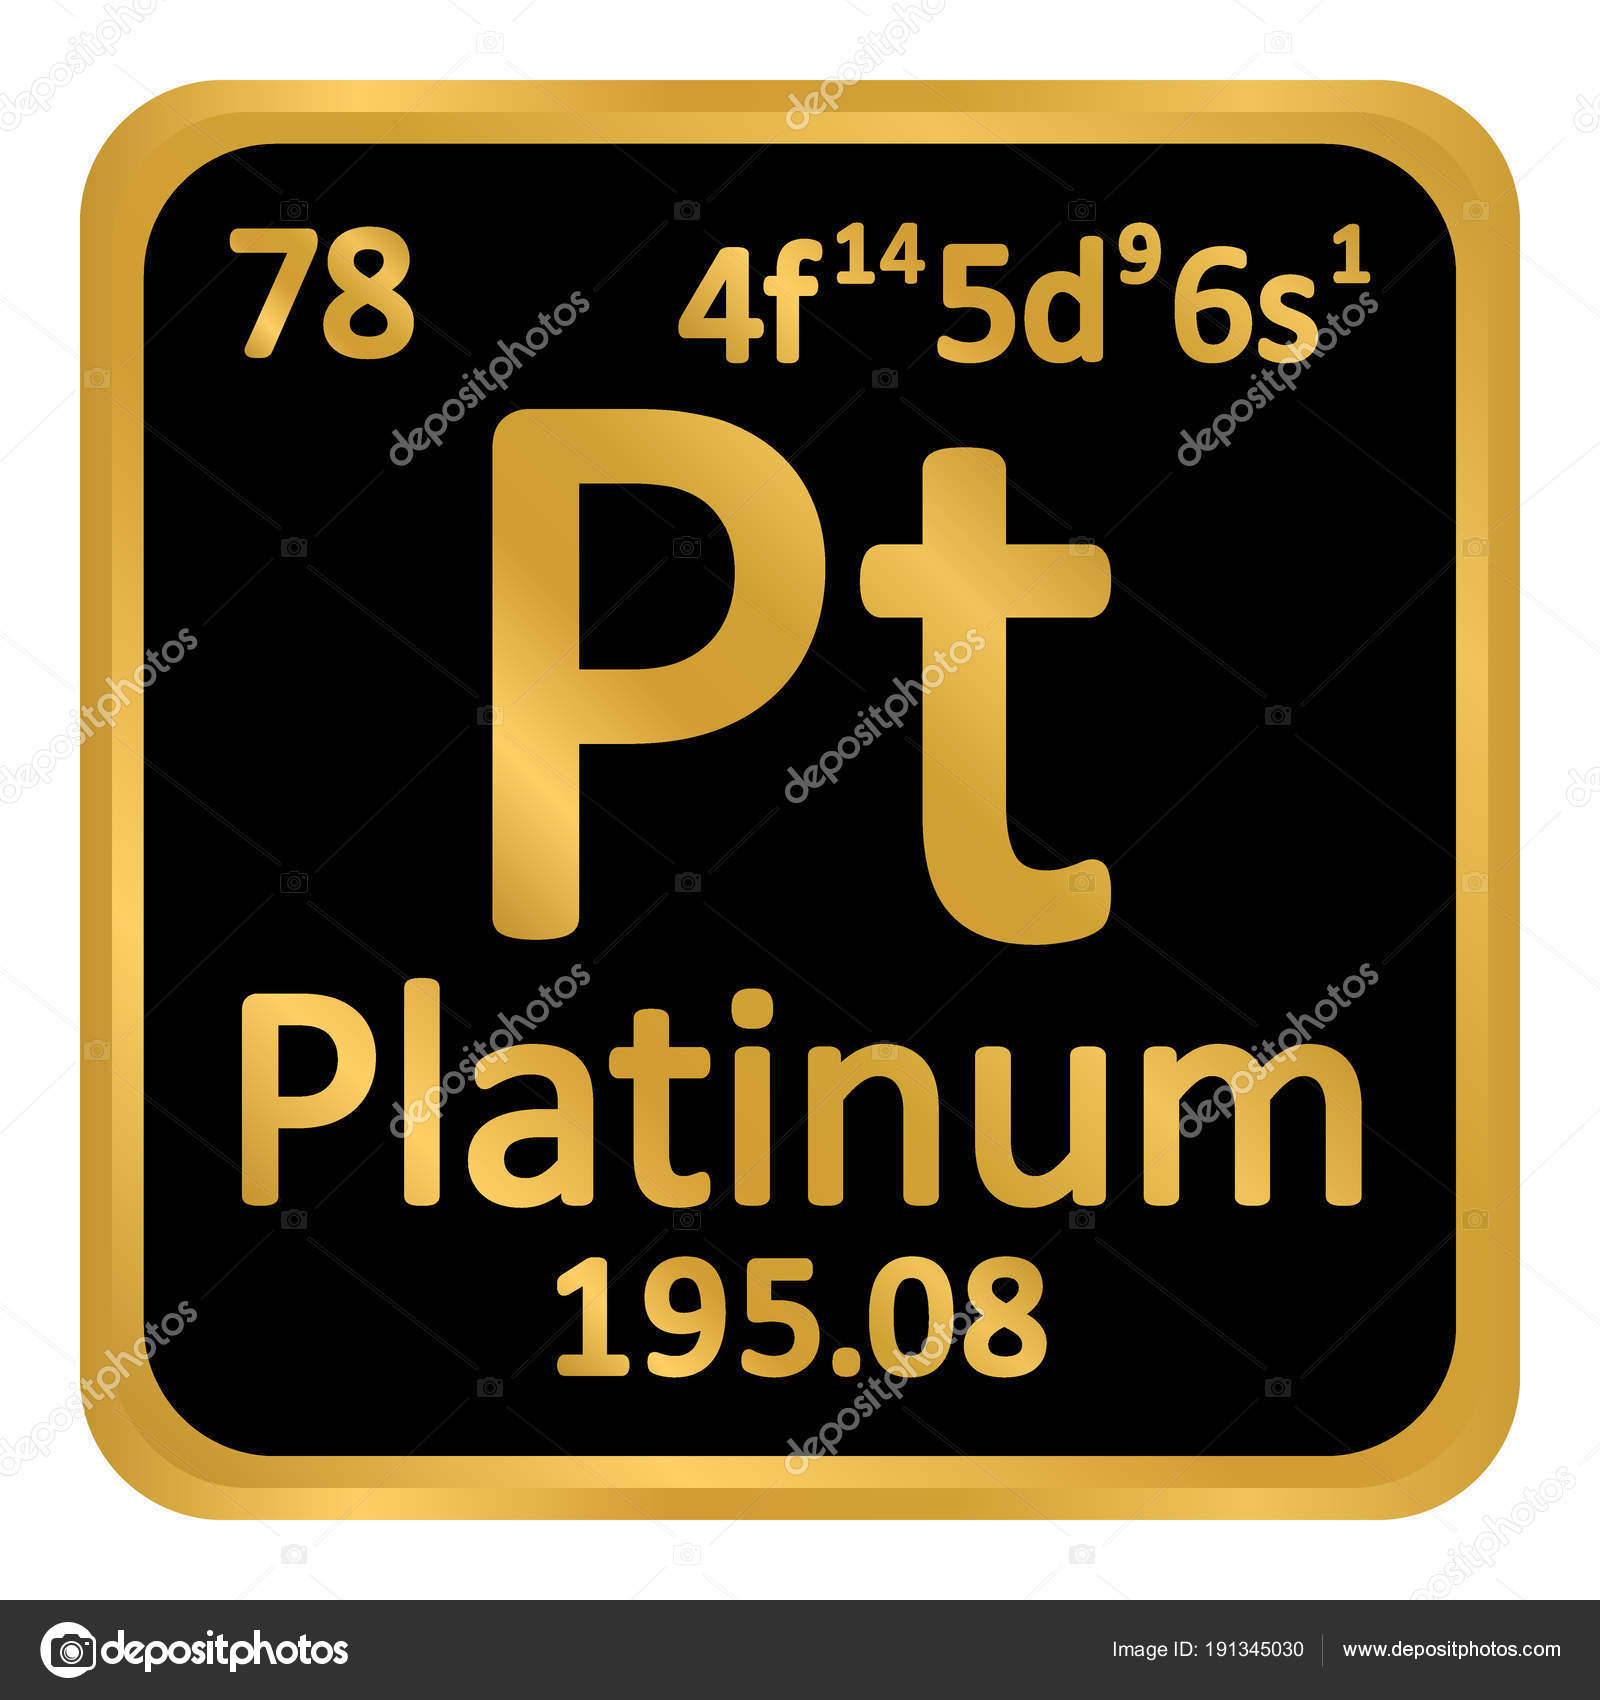 image chemical flat royalty vector free element platinum